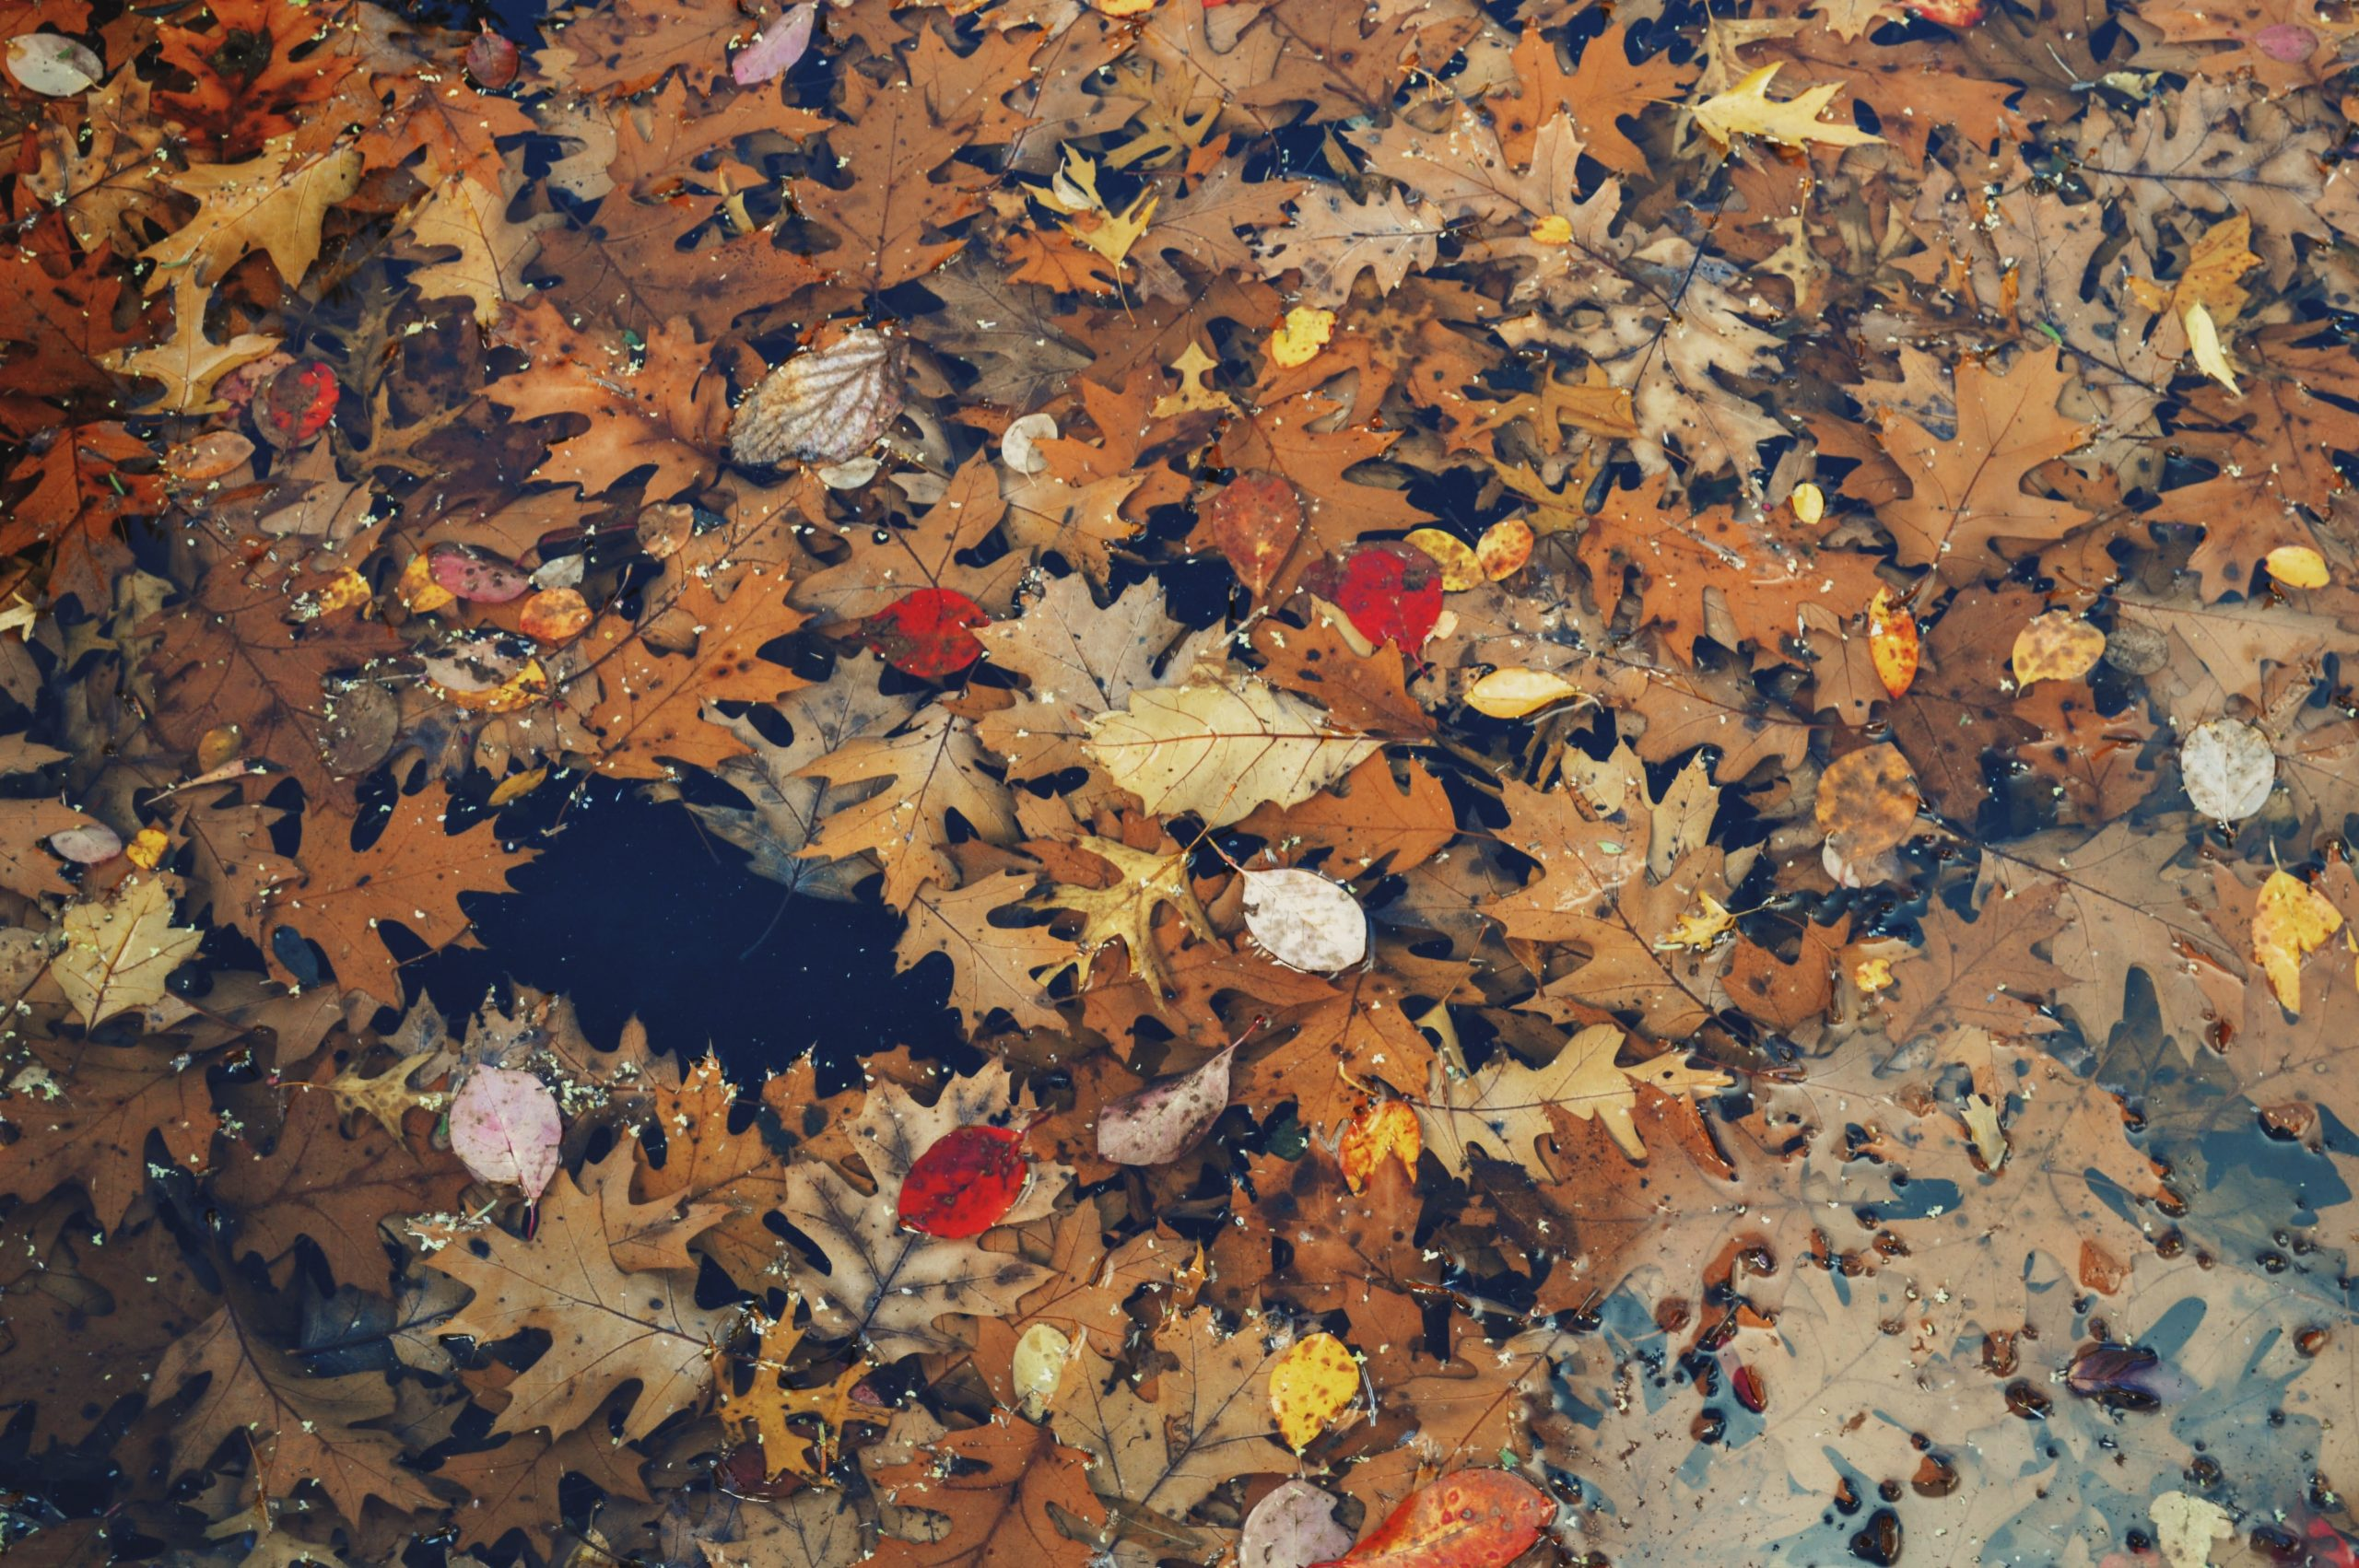 Leaves to highlight the fall season